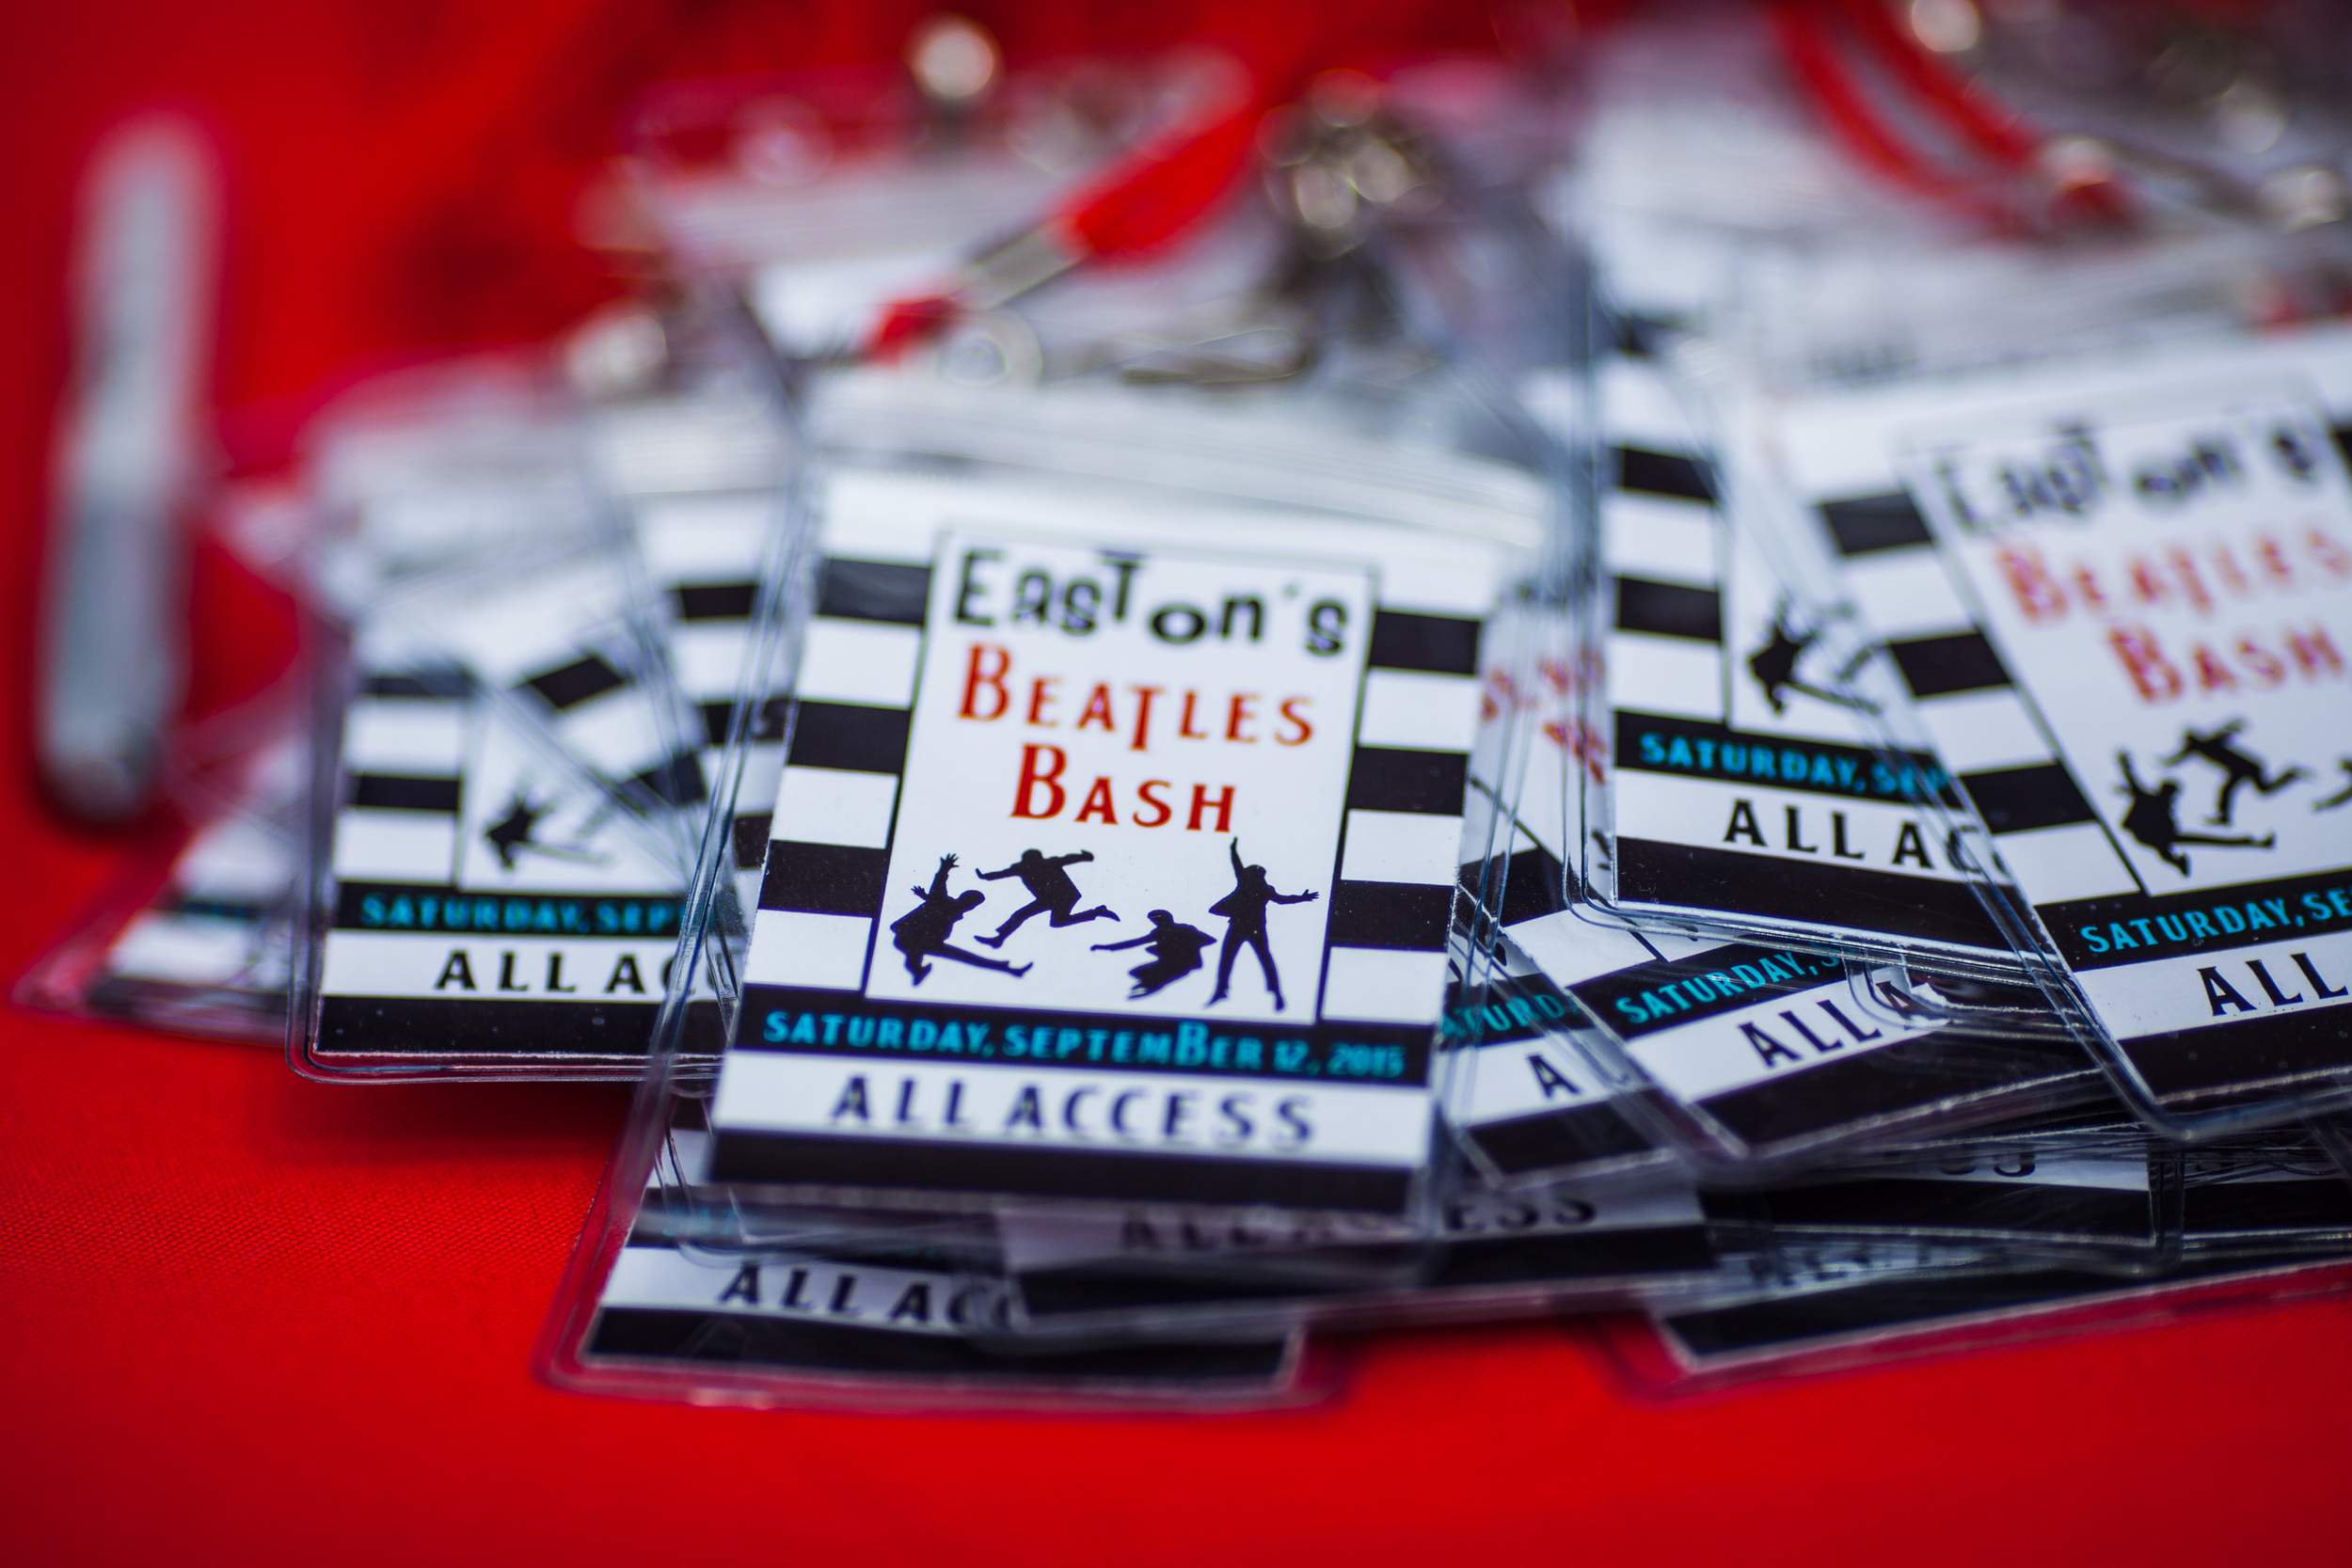 Beatles Bash all access passes designed by Down Emery Lane.